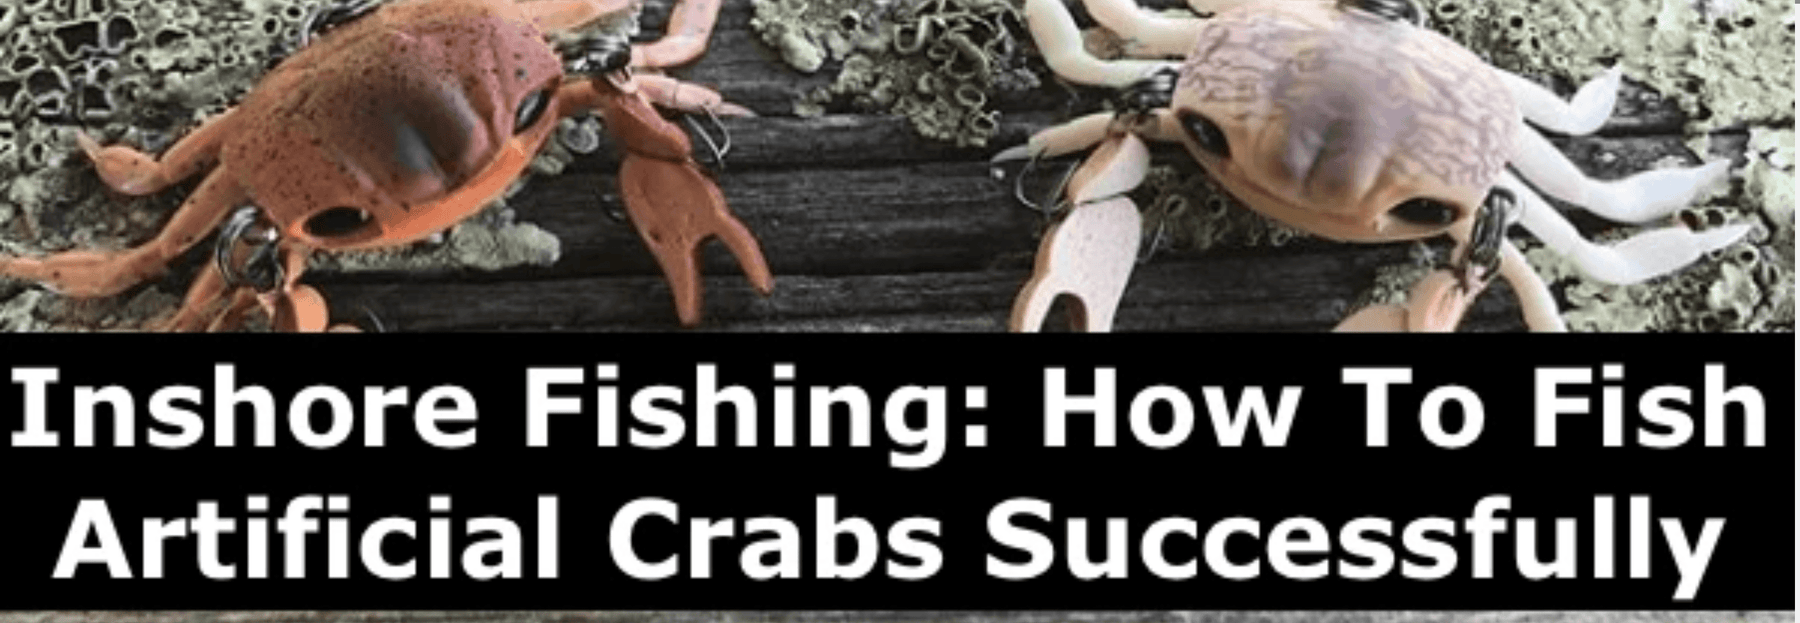 Inshore Fishing - How to Fish Artificial Crabs Successfully